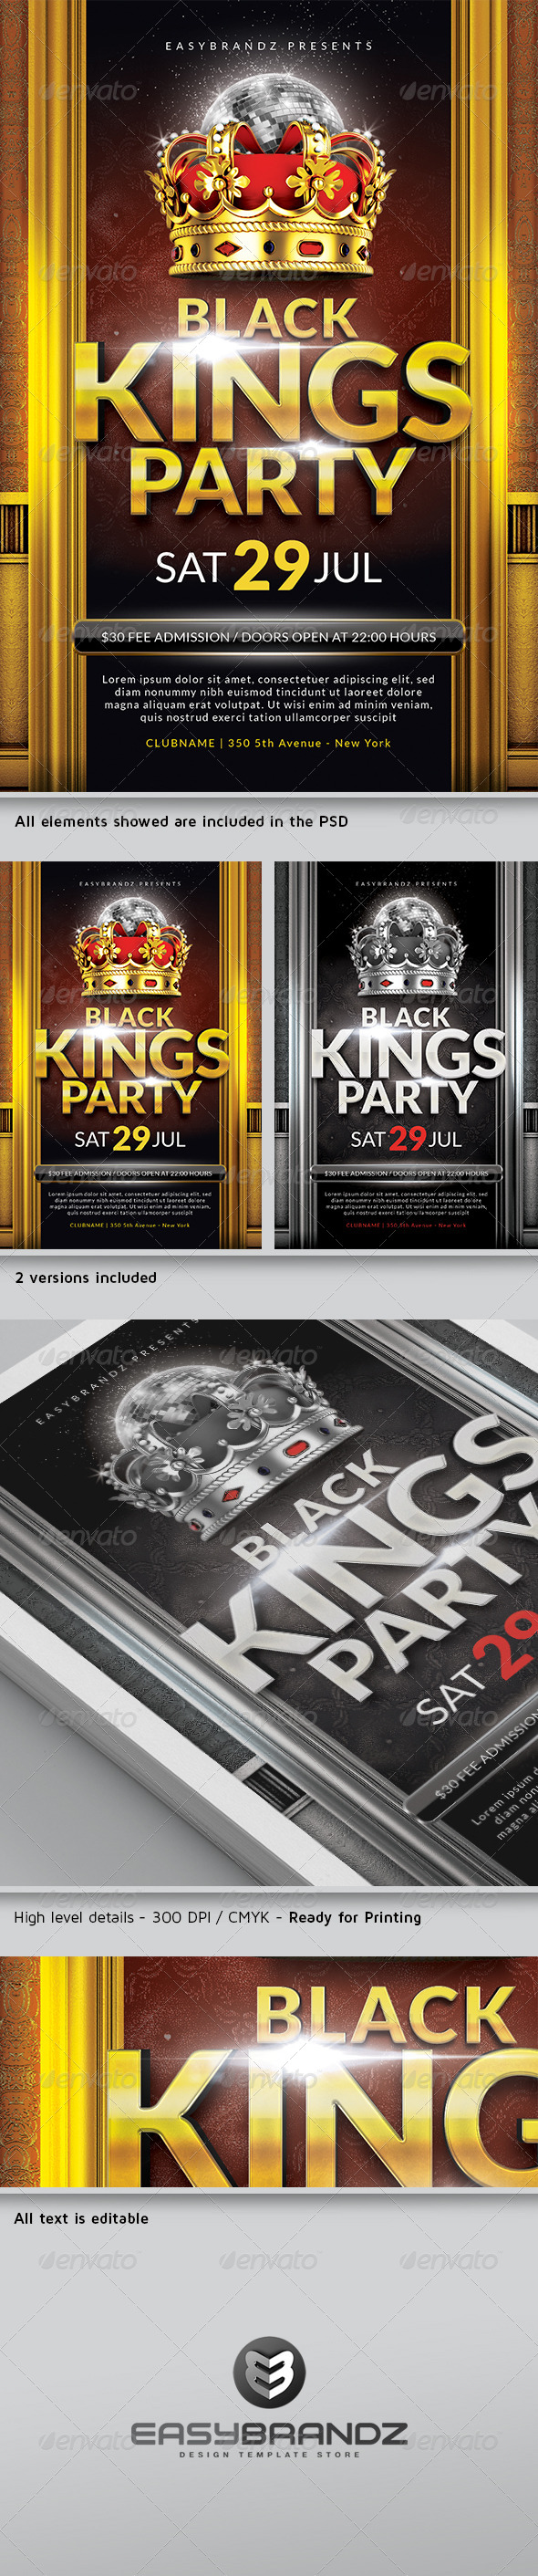 Black Kings Flyer Template - Events Flyers